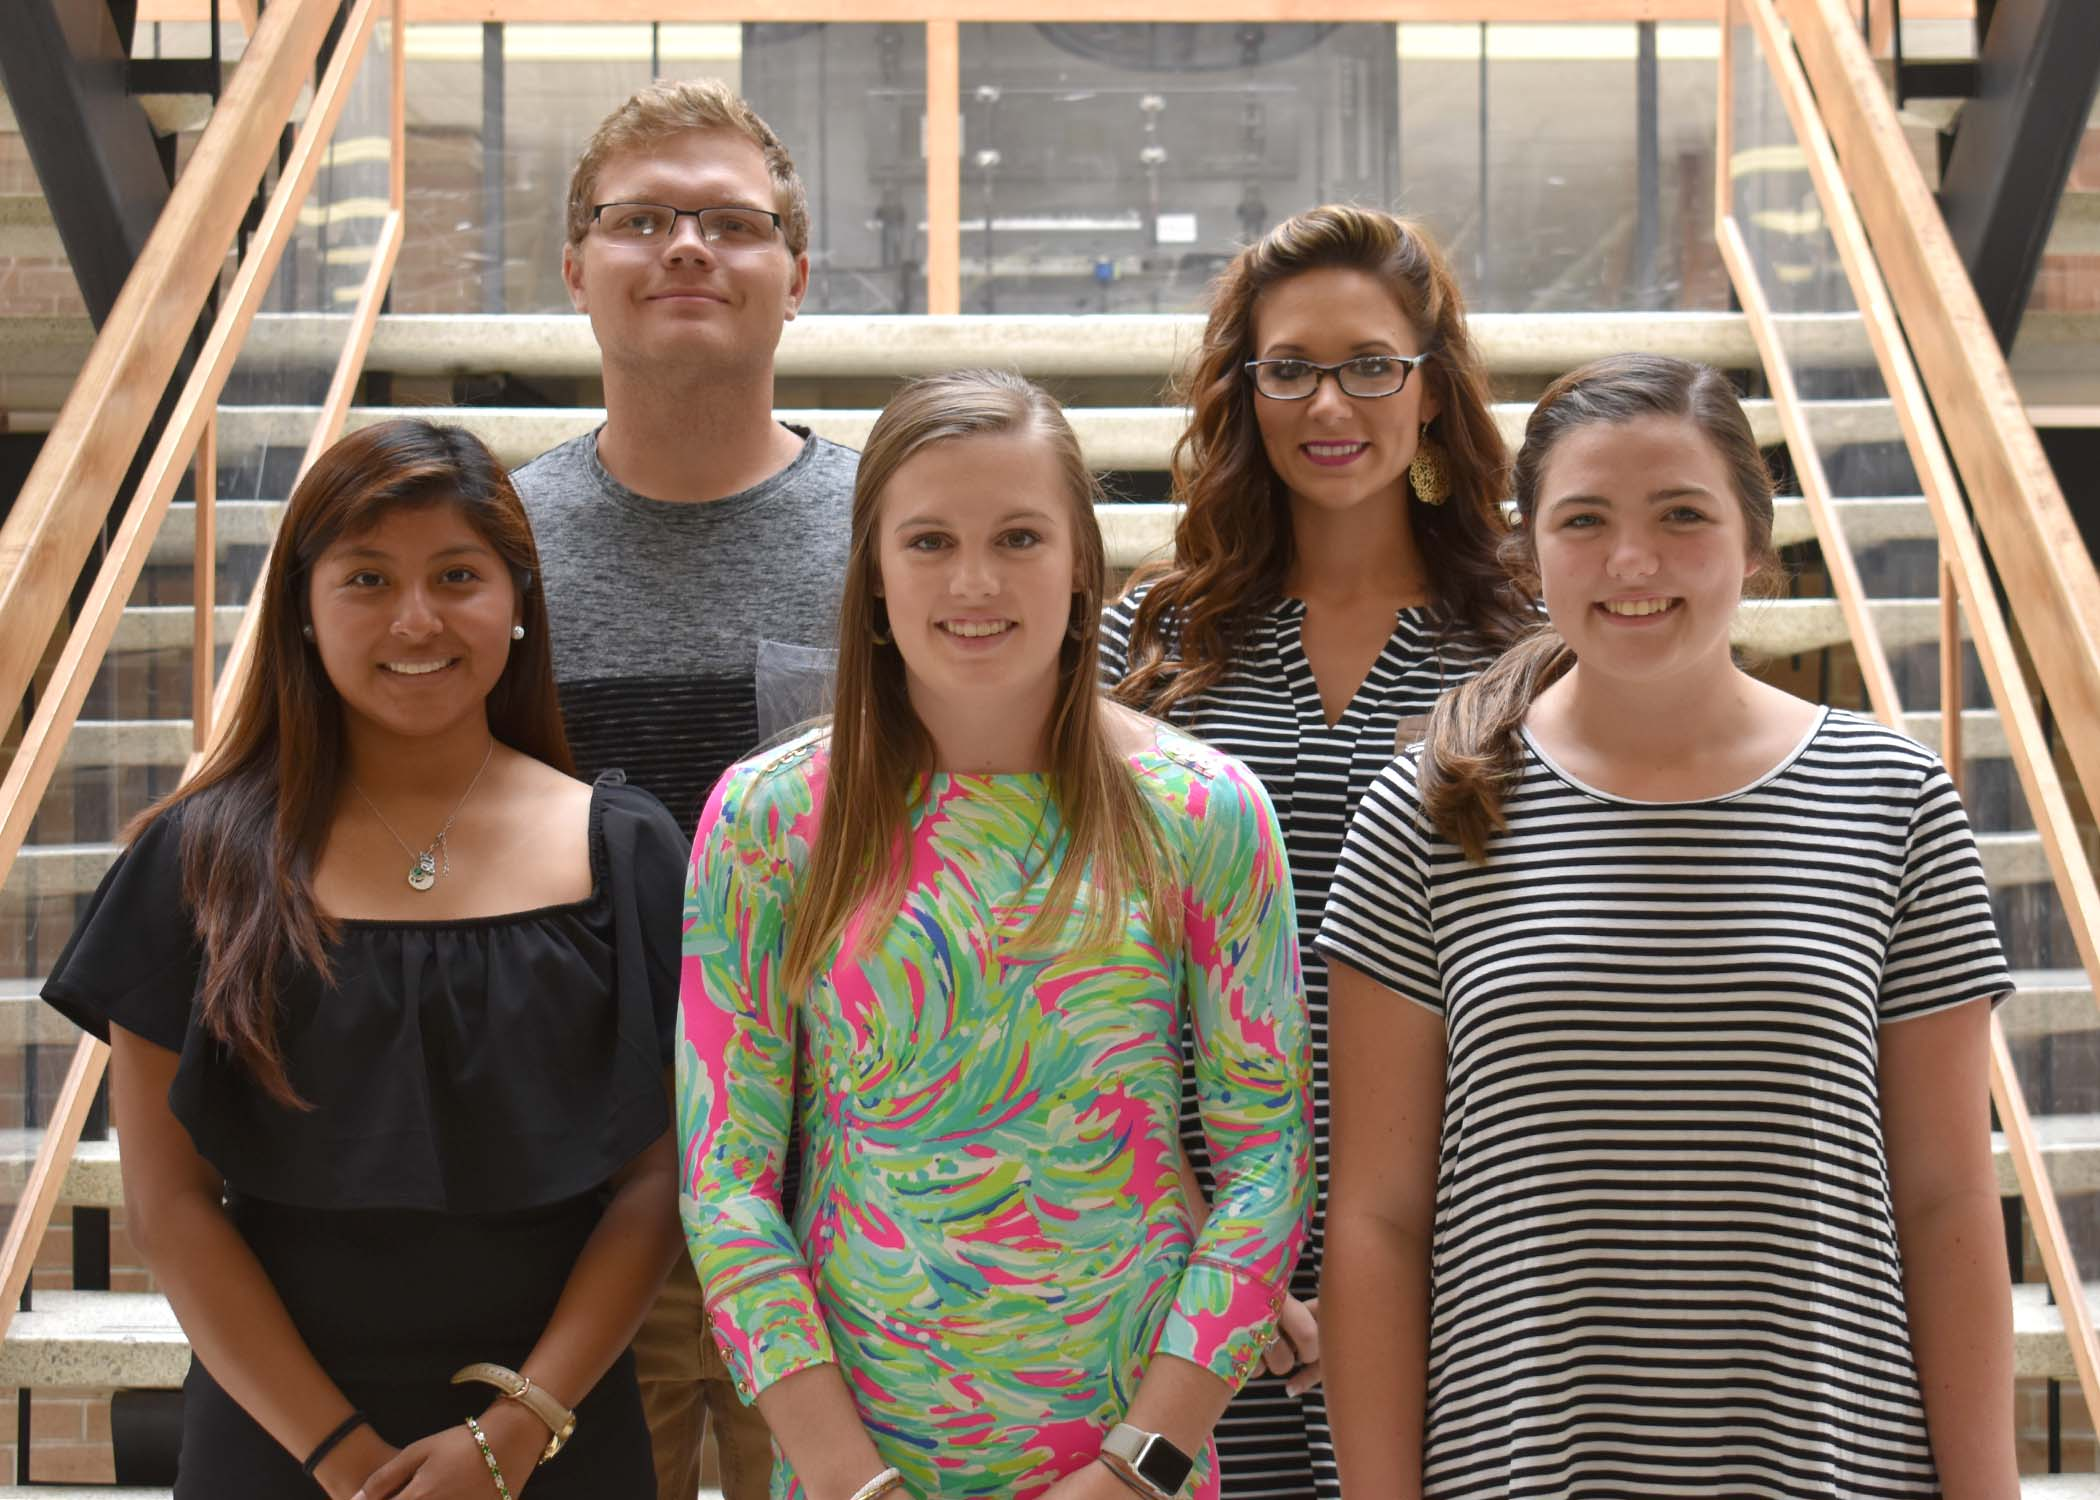 Pictured left to right are Yesica Lopez Lorenzo of Seven Springs, Wells Fargo Scholarship; Kayla Grady of Kinston, Emily Brown Tripp Scholarship; and Kelsey Worthington of Ayden, Kenneth and Lou Ann Tetterton Scholarship; back row, Cody Ladich of Pink Hill, Kenneth and Lou Ann Tetterton Scholarship; and Ashlee Townsend of Ayden, Sue Marcon Jones Memorial.